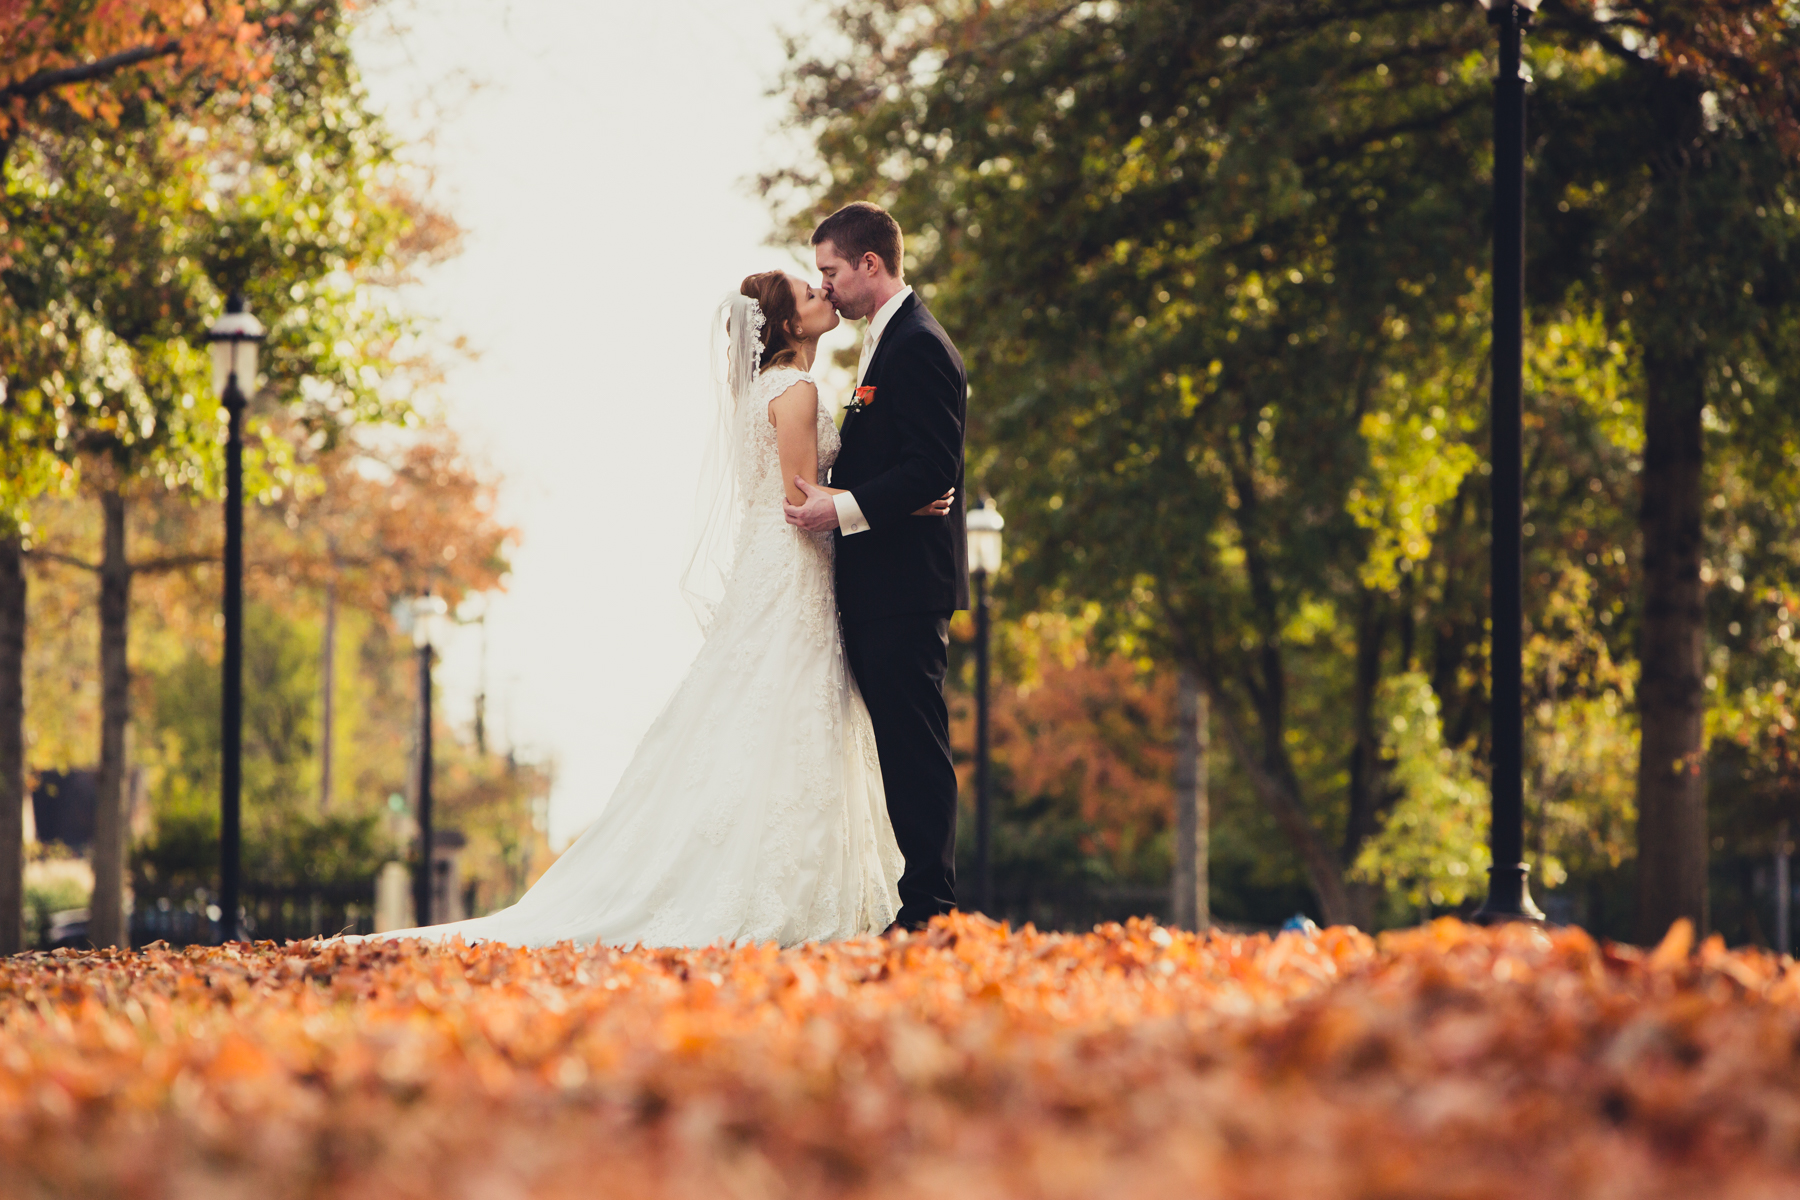 What a beautiful fall wedding, just perfect! Oaklands Mansion in the fall is such a gorgeous location for wedding photography. The leaves are about two inches thick on the ground and the color is fantastic.